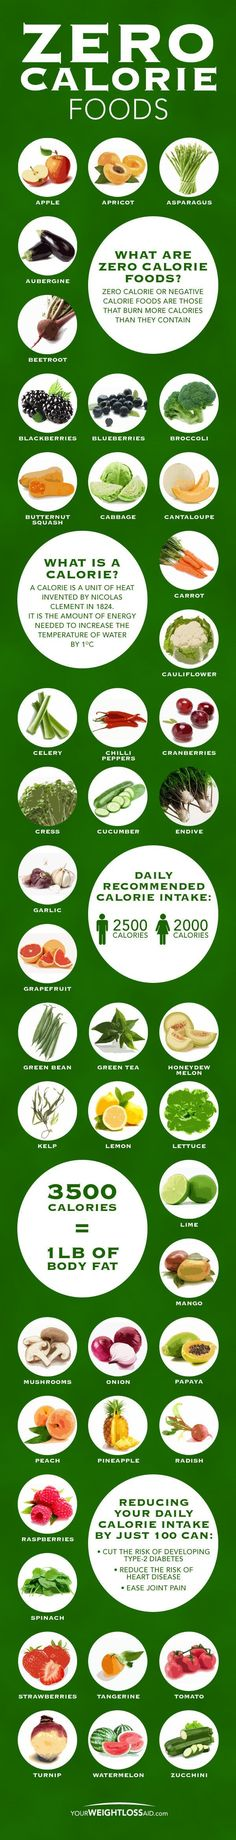 Zero calorie foods are those that burn more calories than they contain. This infographic breaks them down…